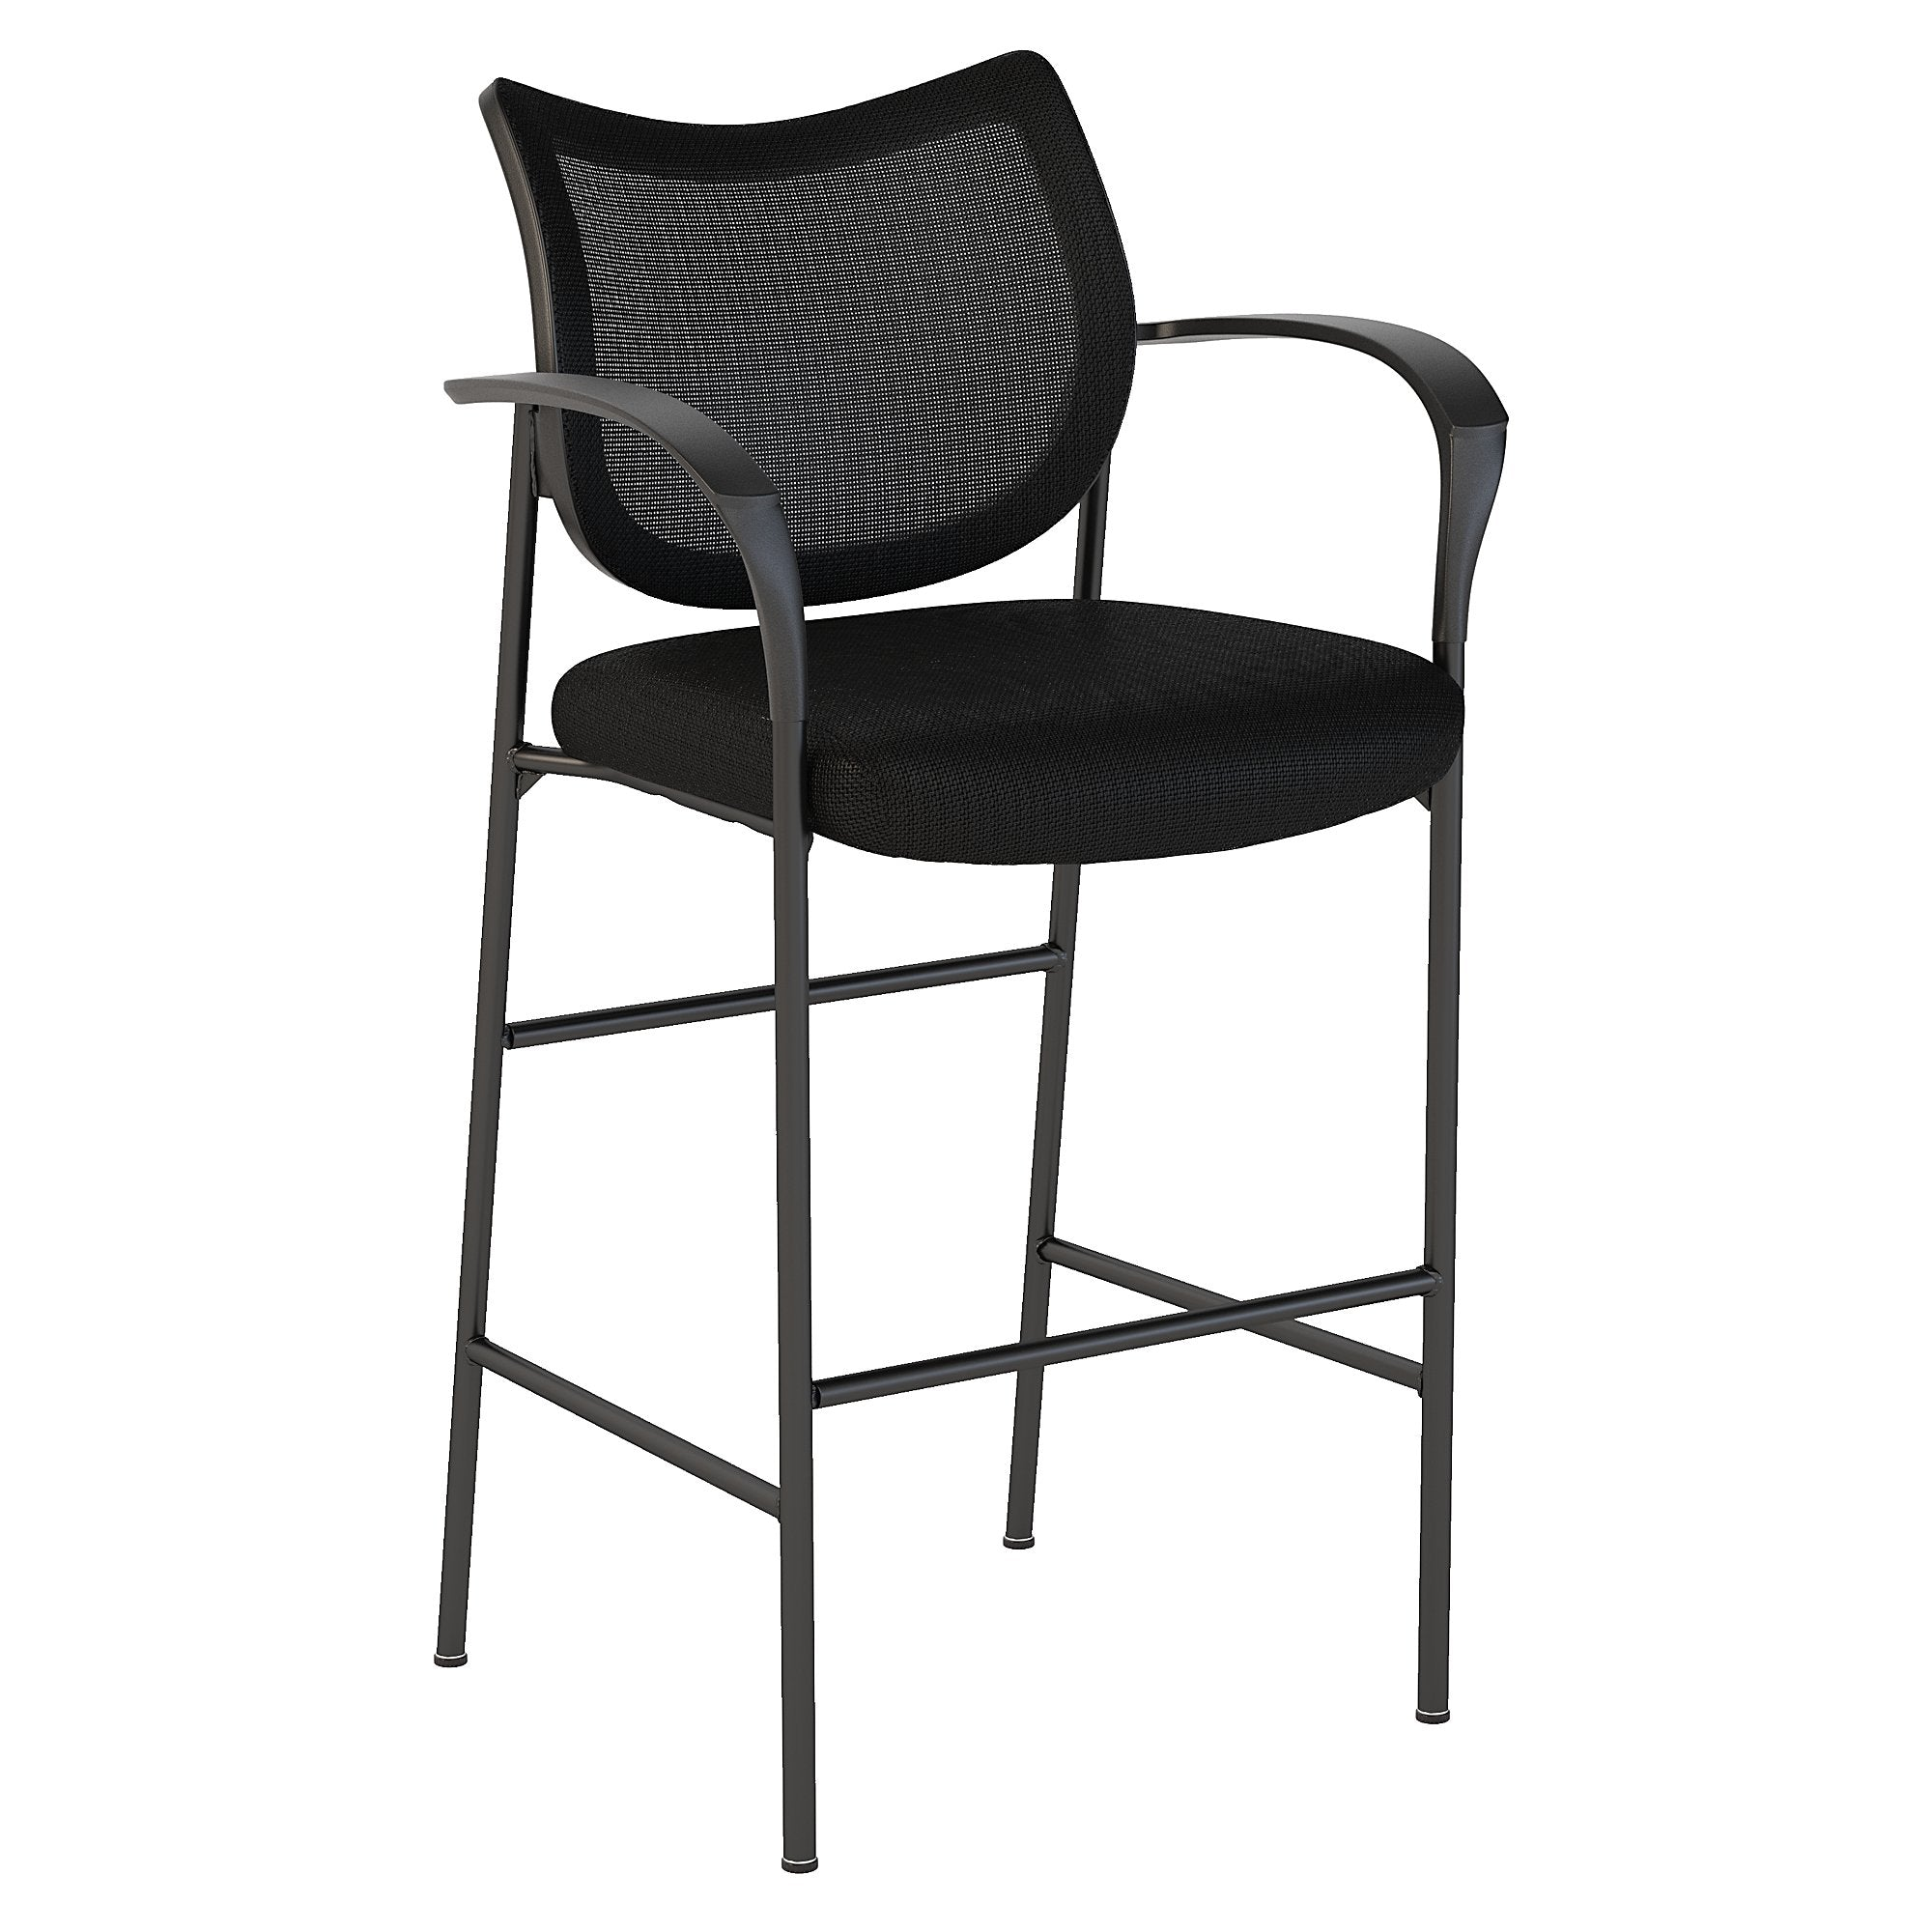 CH1403BLF-03 Bush Business Furniture Corporate Black Nylon Mesh Back Standing Desk Stool